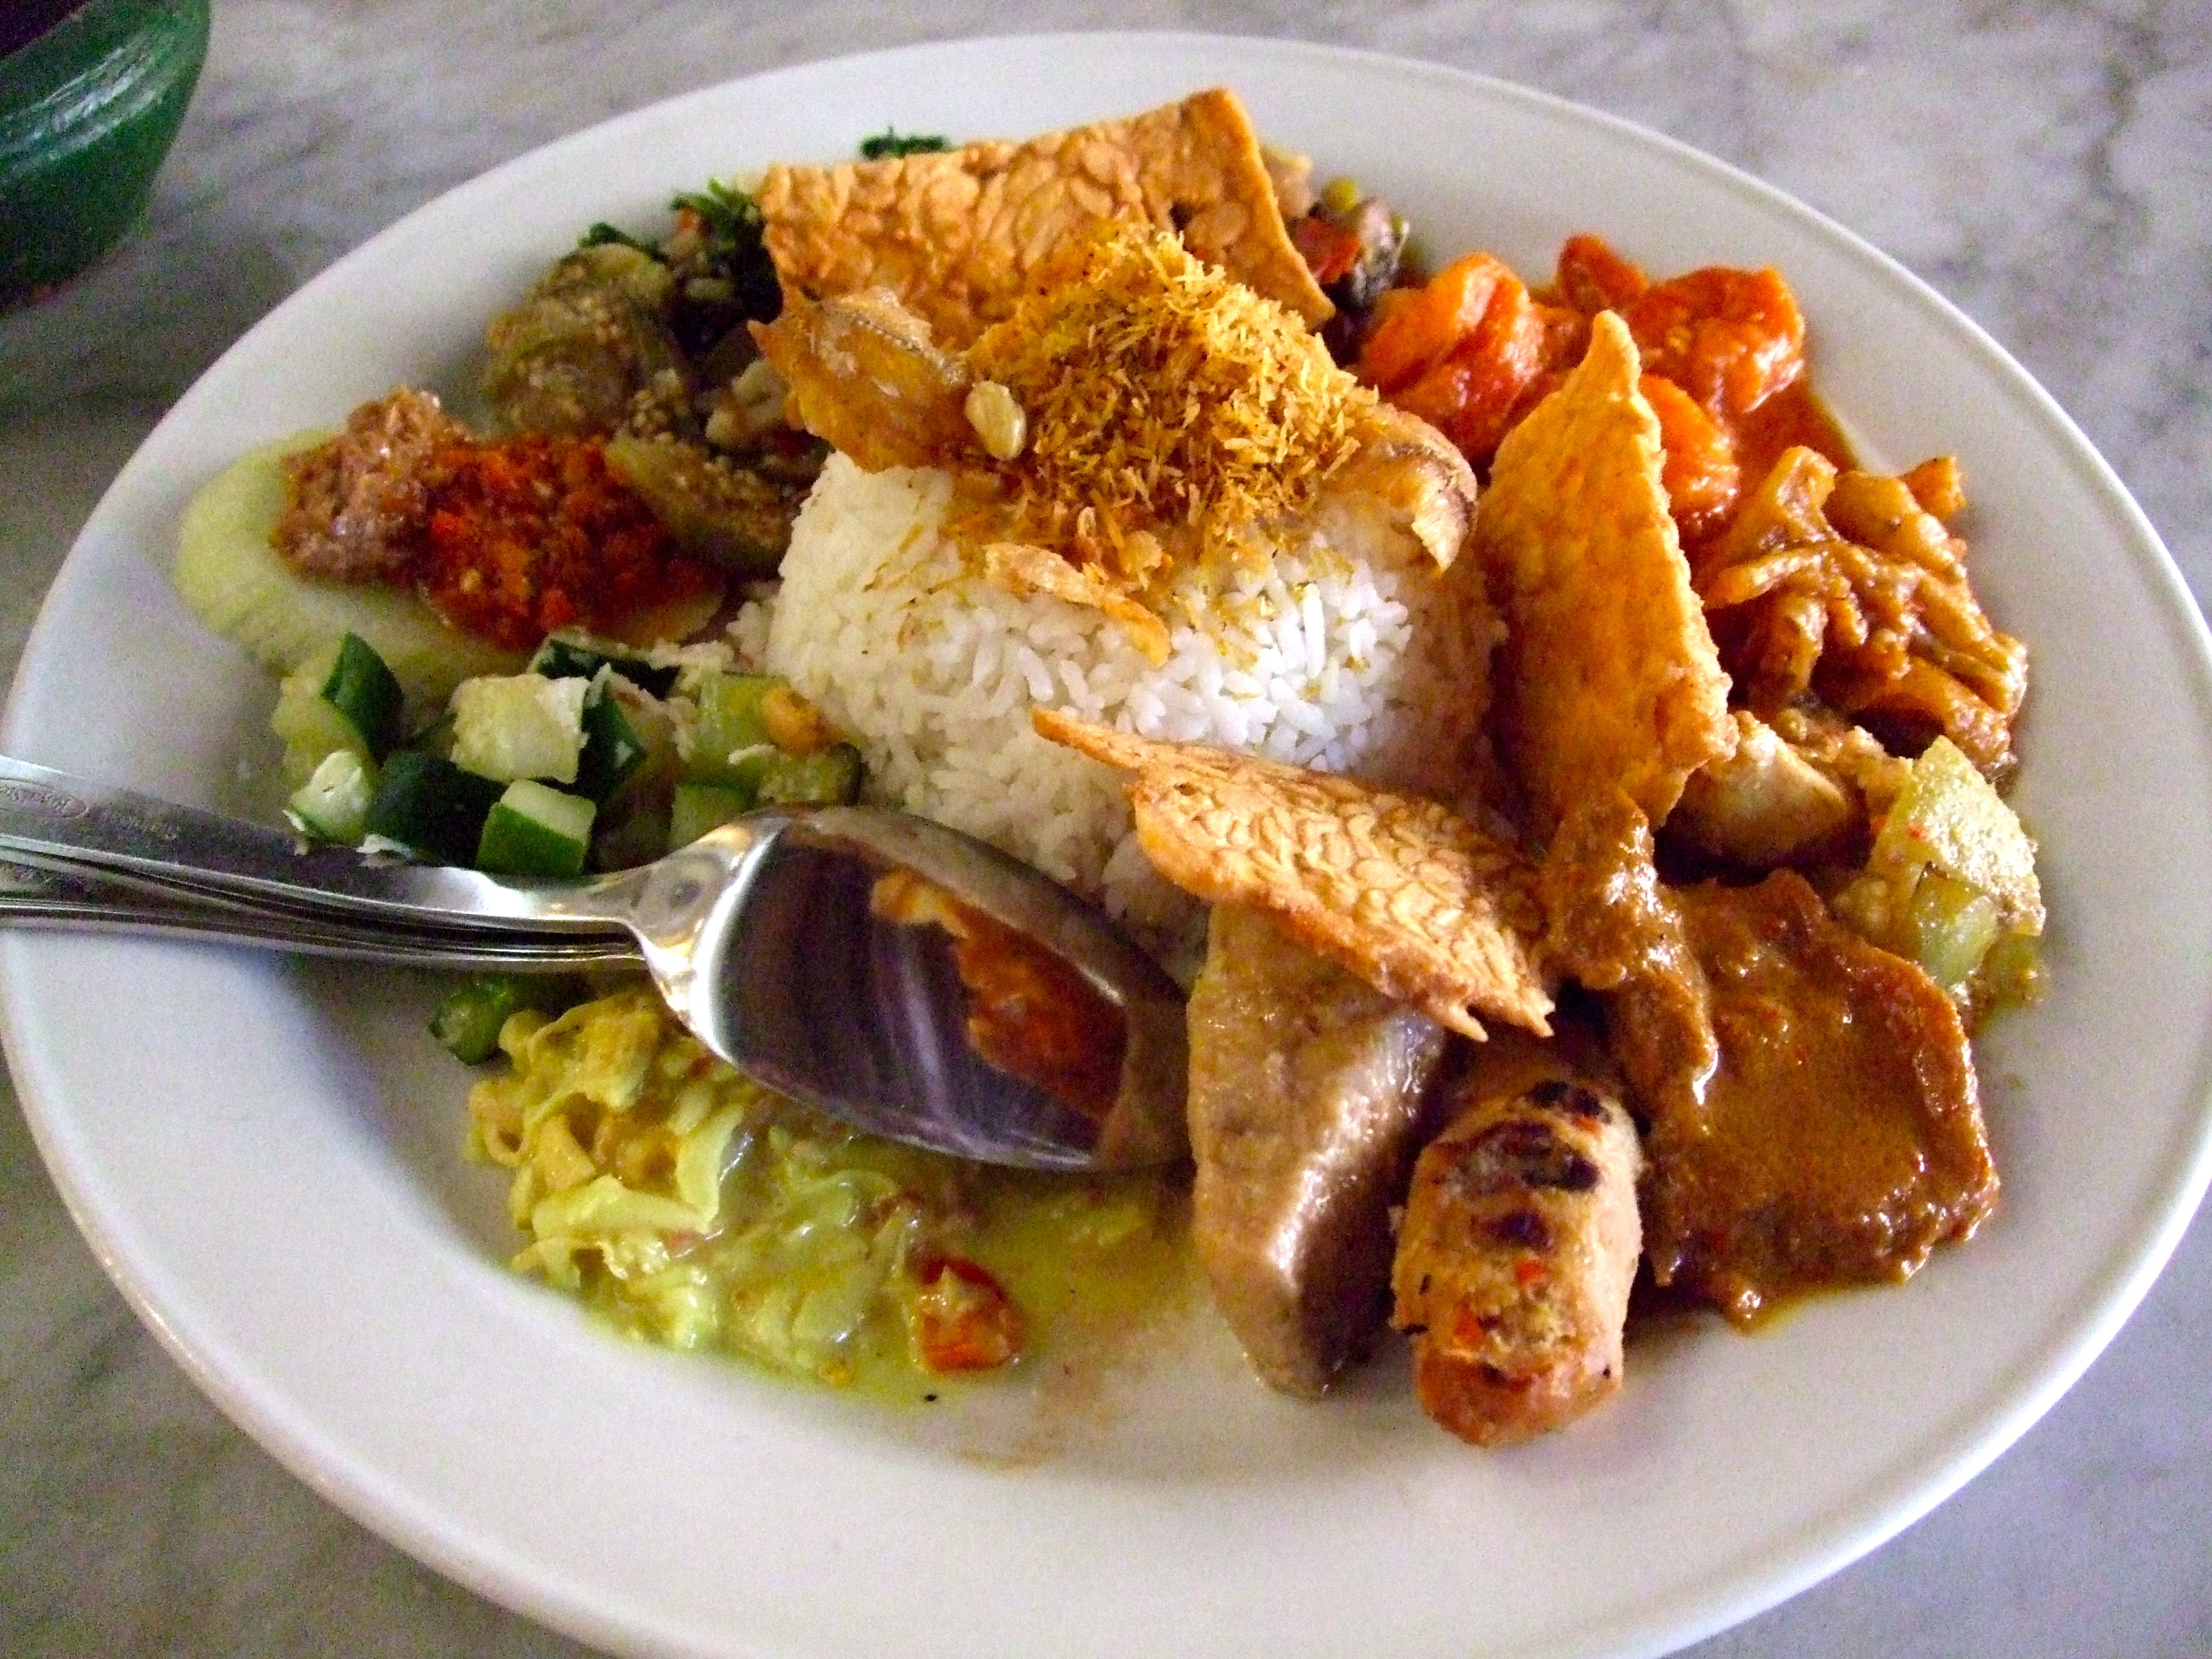 File:Made's Warung Nasi Campur.jpg - Wikimedia Commons